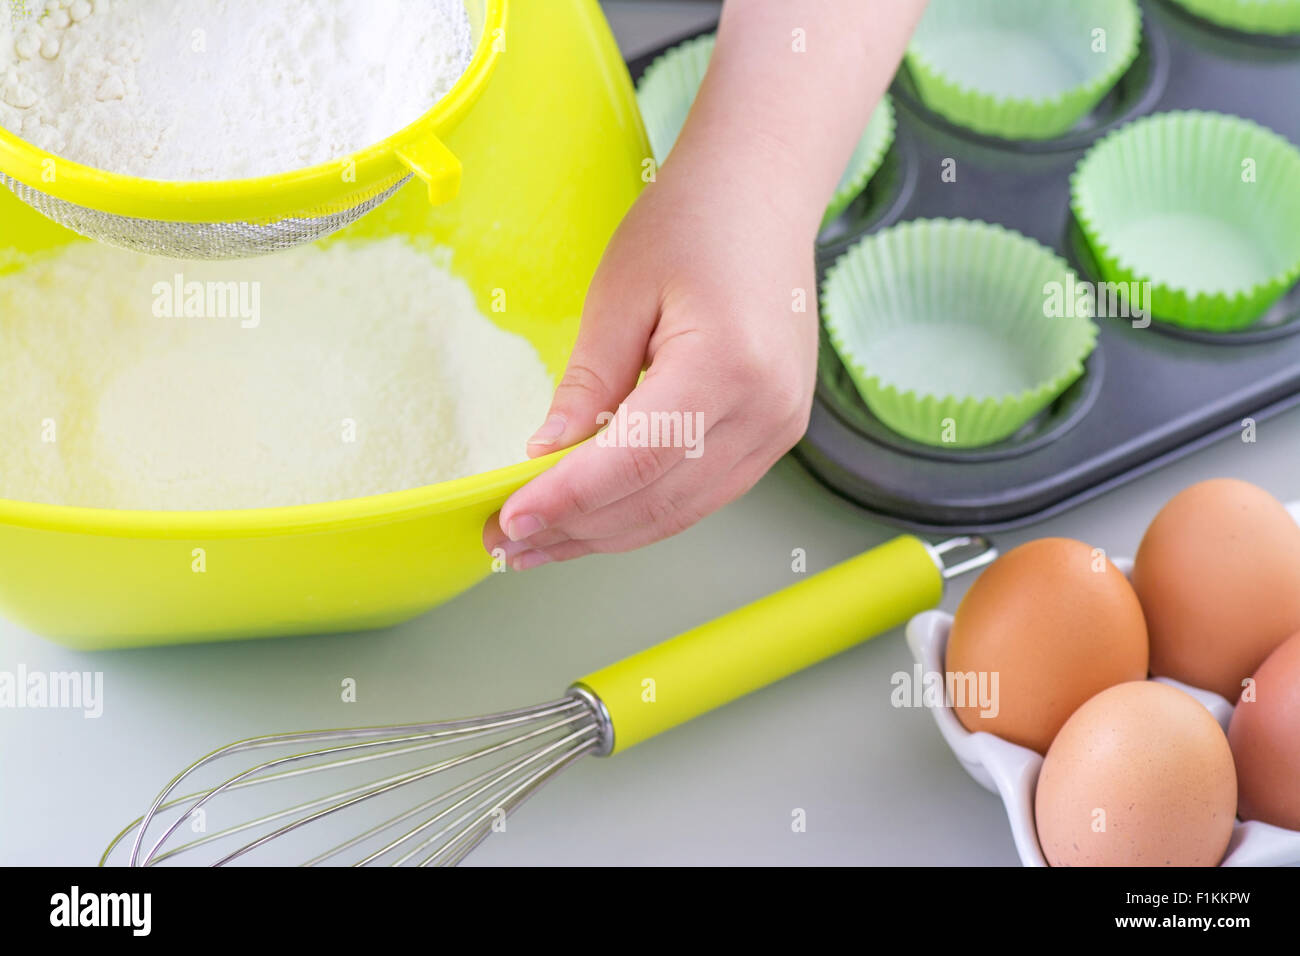 Child sieving flour into a bowl in preparation for  cooking cake, room for text - Stock Image